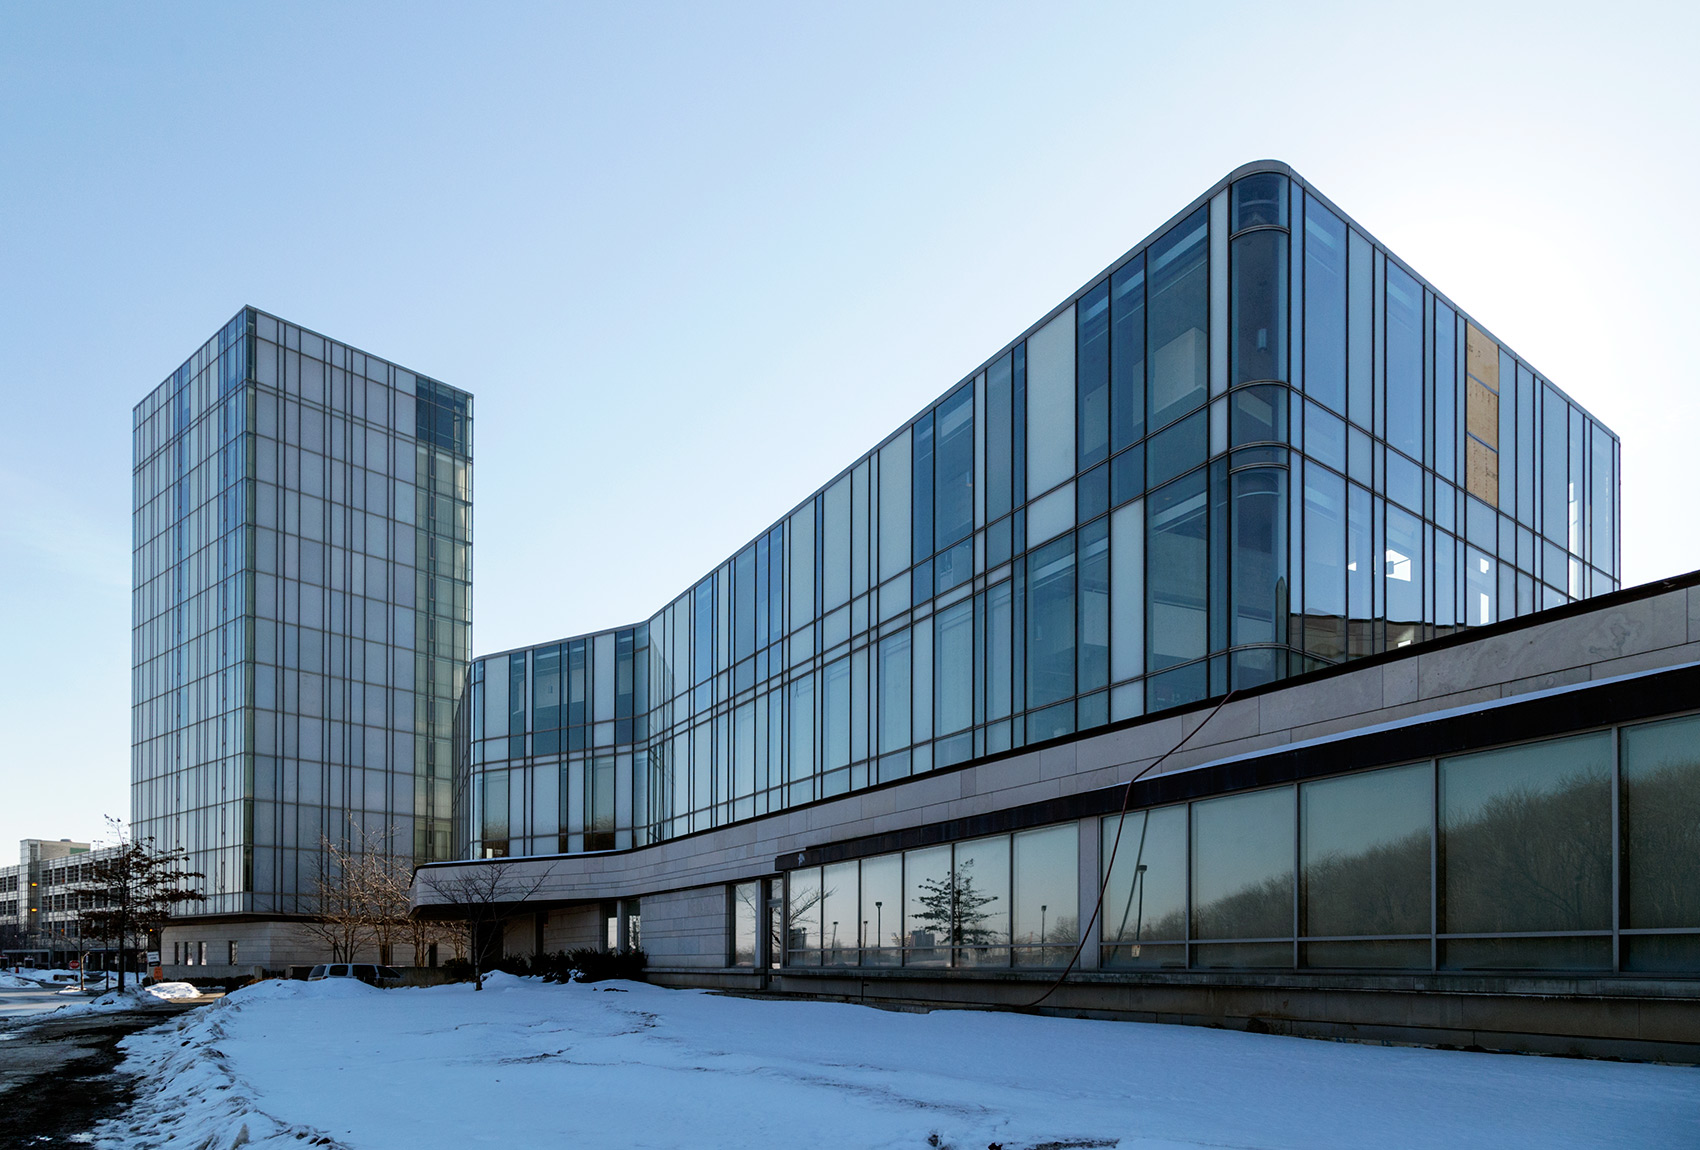 20150216. The award winning Seymour Schulich Building and Execut